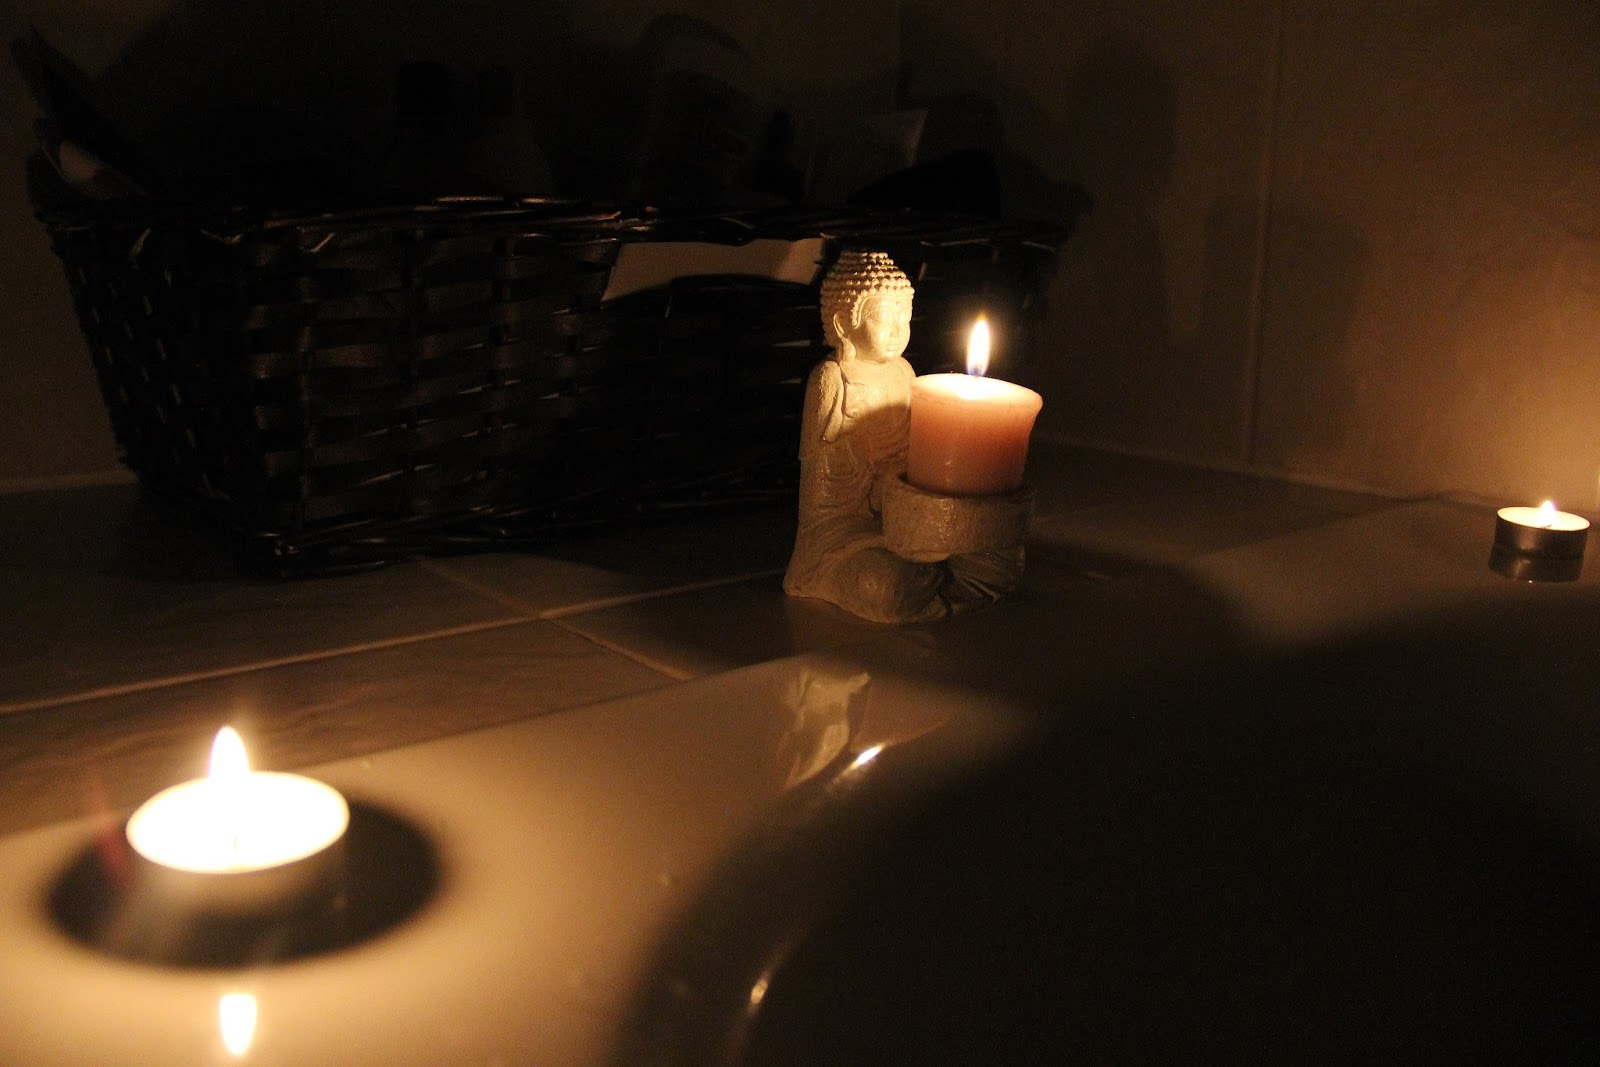 A bath and candles are the best way to relax.